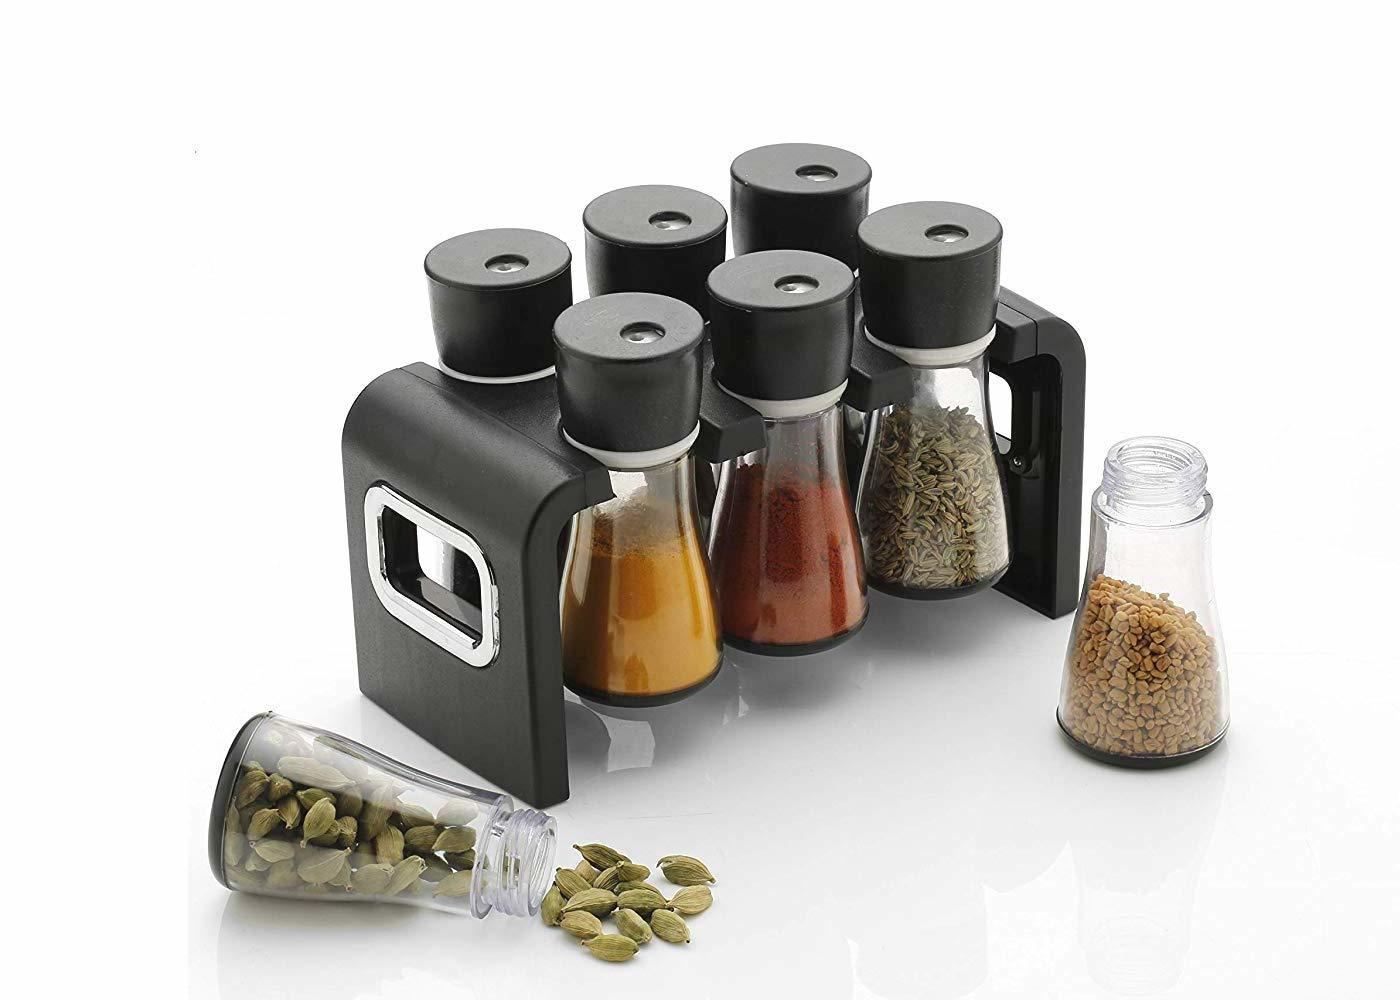 6 Pc Multipurpose Spice Rack Plastic Stackable and Space Savvy Dining Table Spice Rack